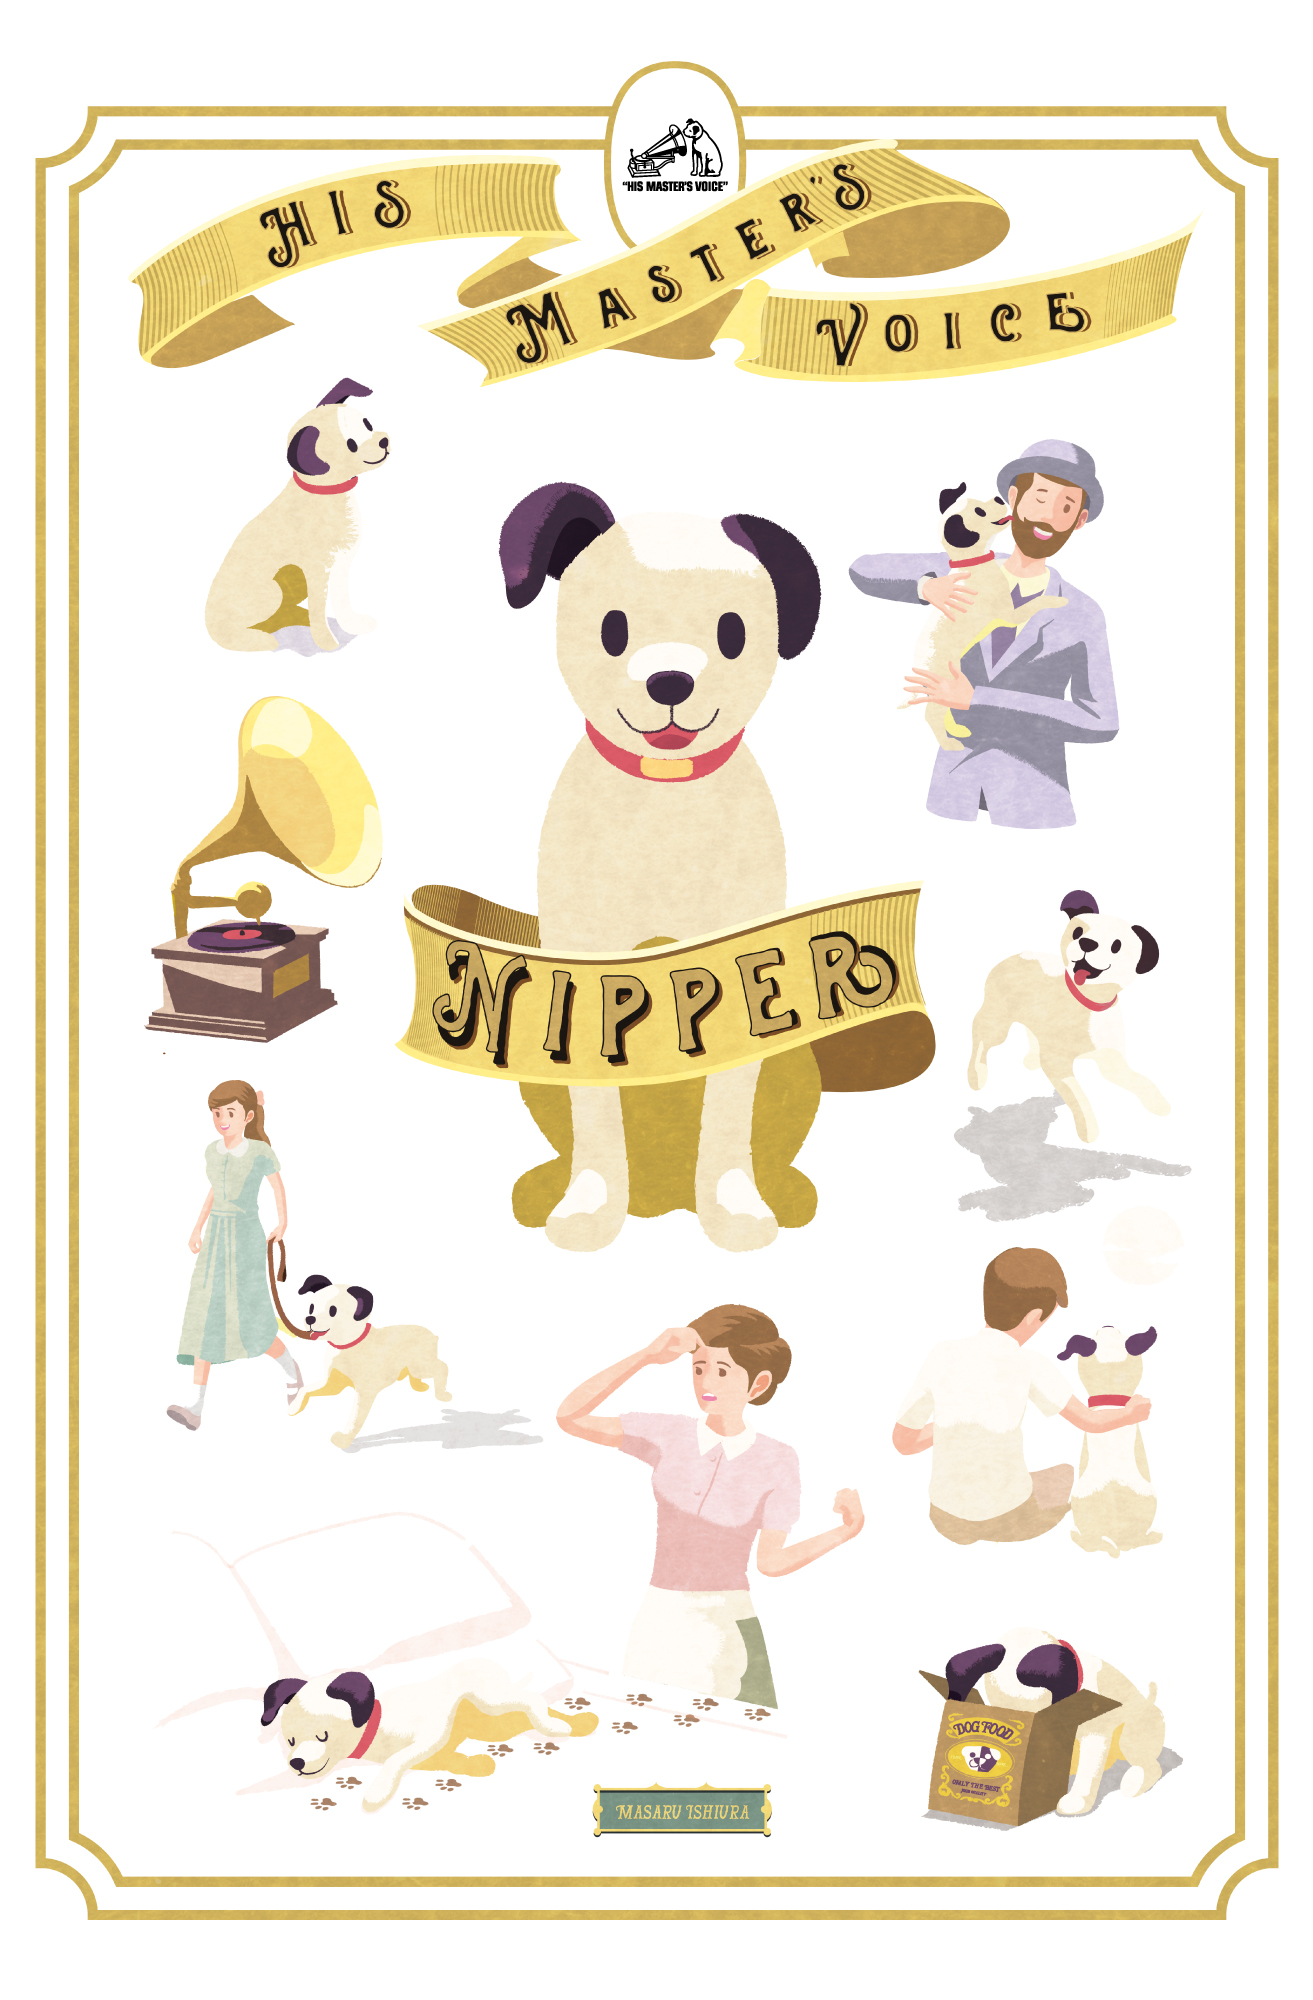 nipper_ehonposter_kyoto_02